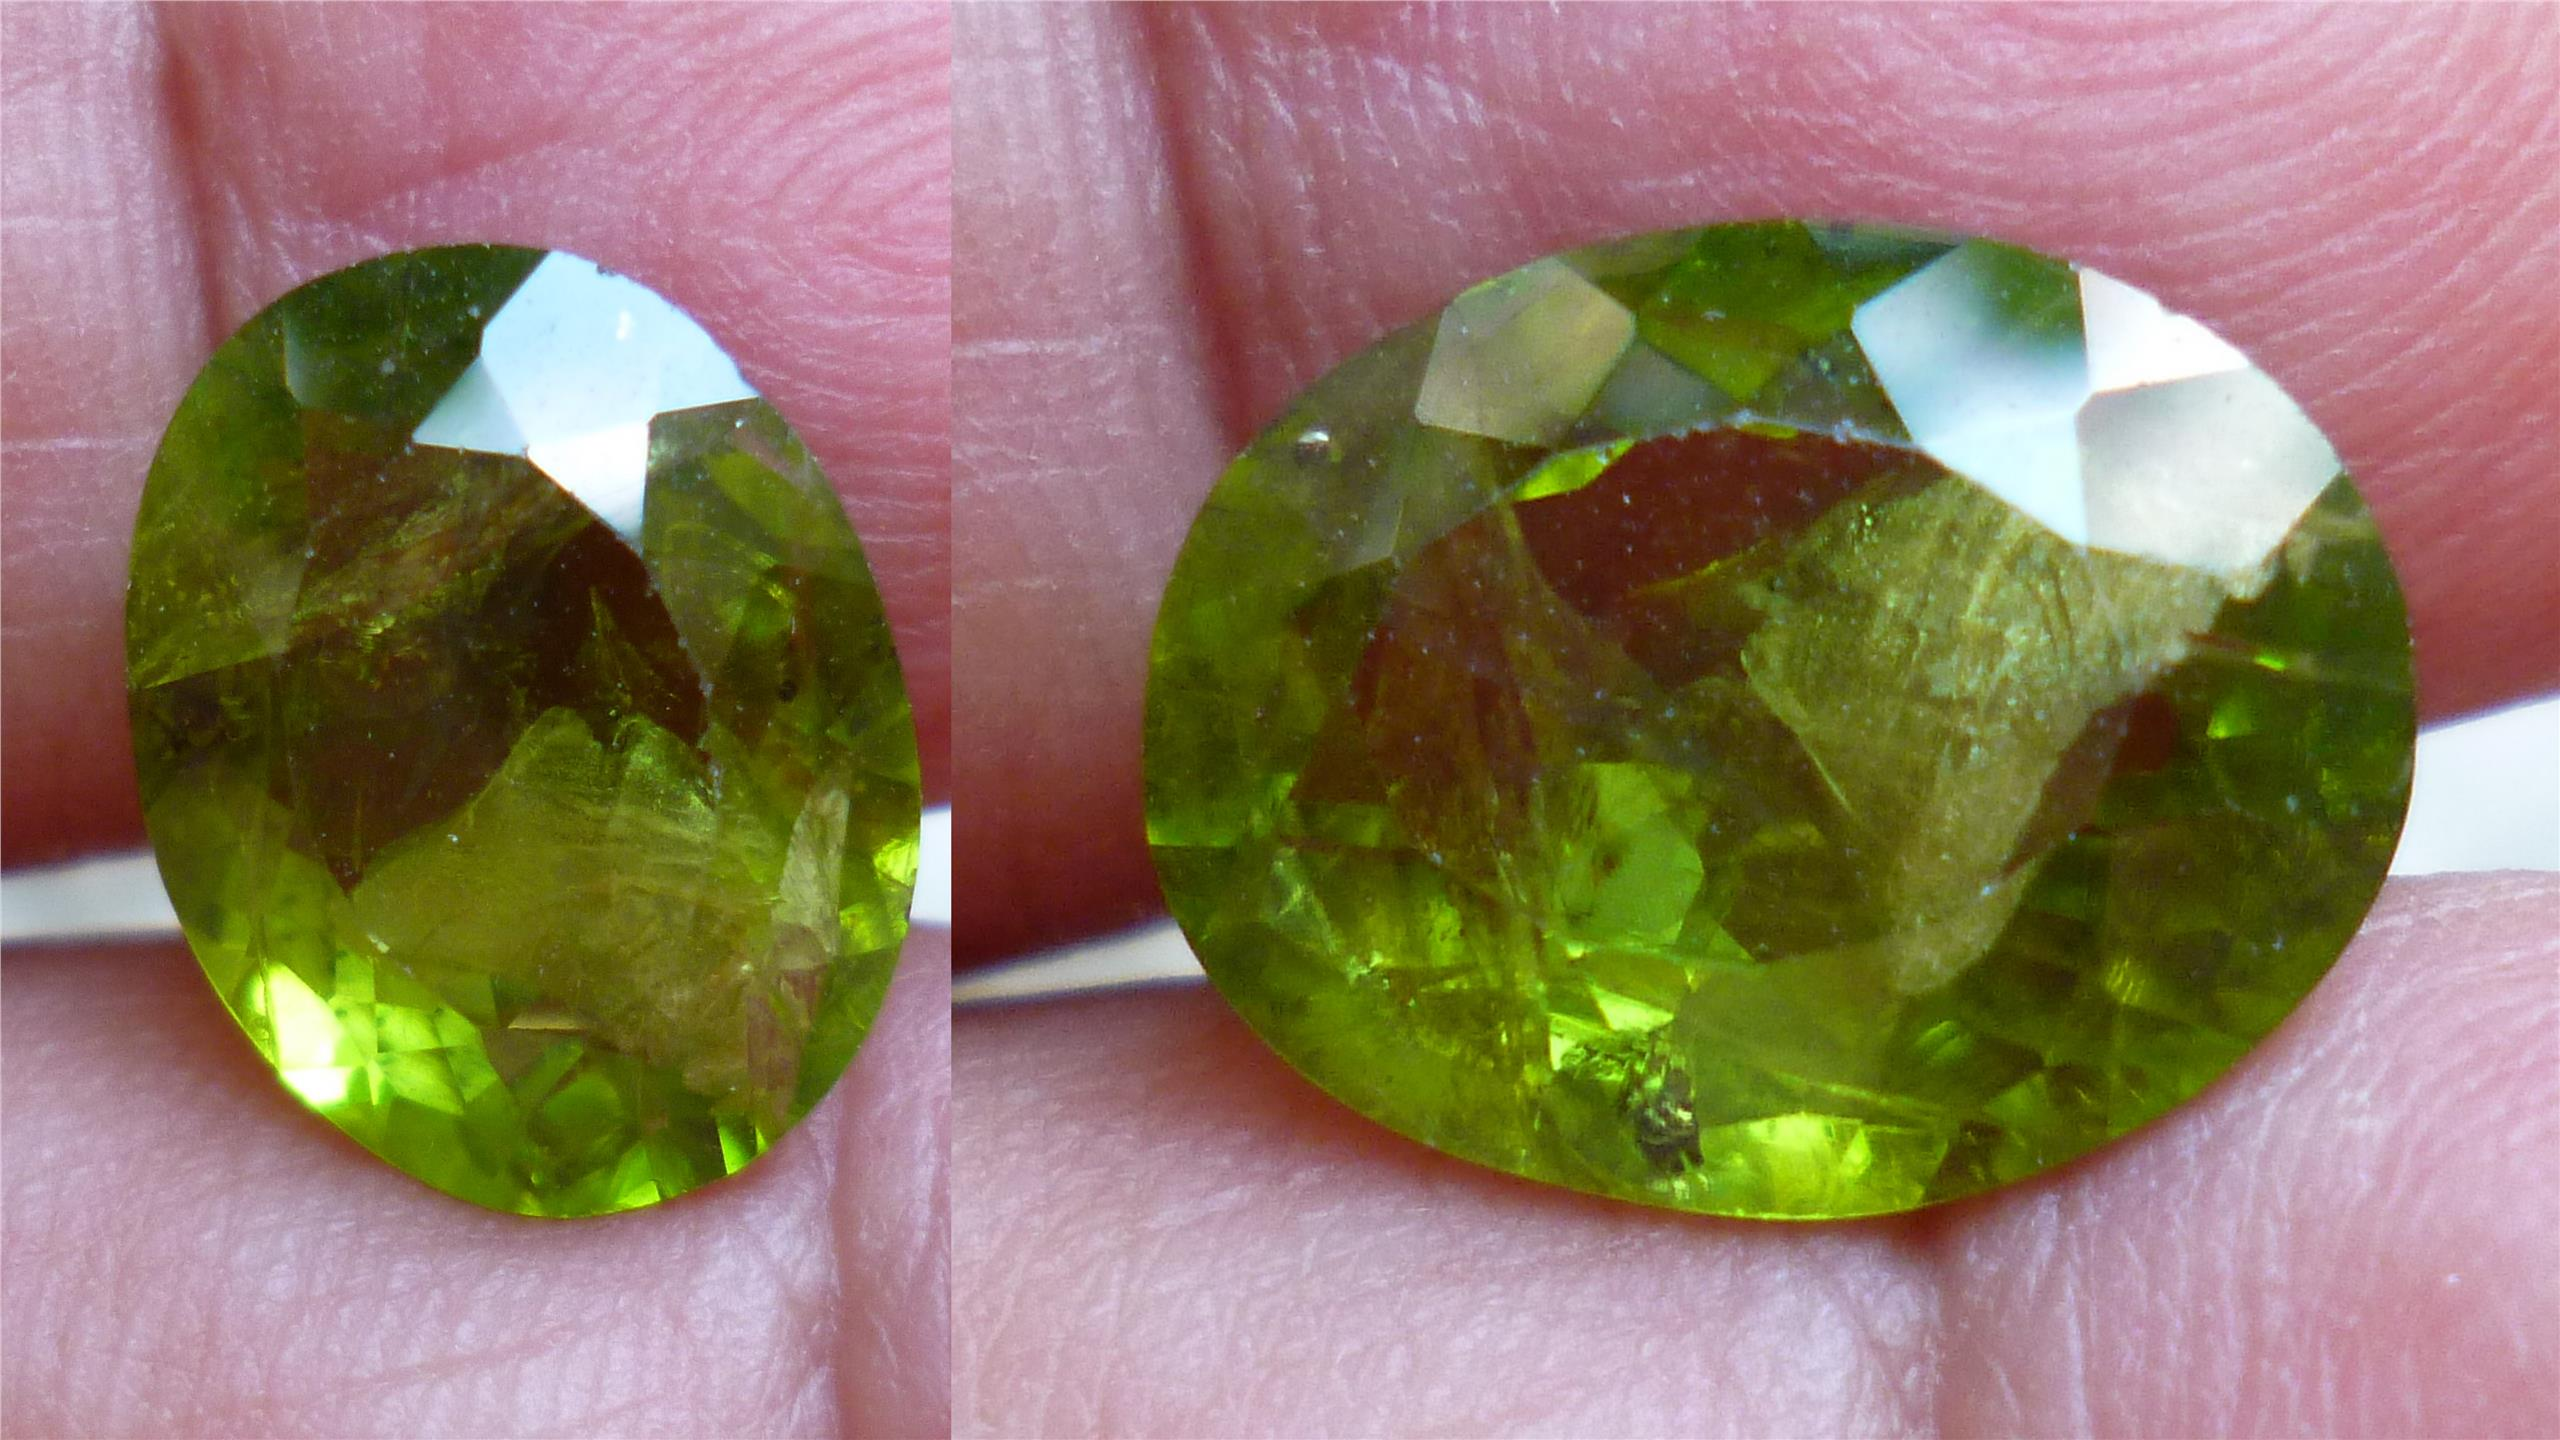 GREEN NATURAL PAKISTAN PERIDOT OVAL